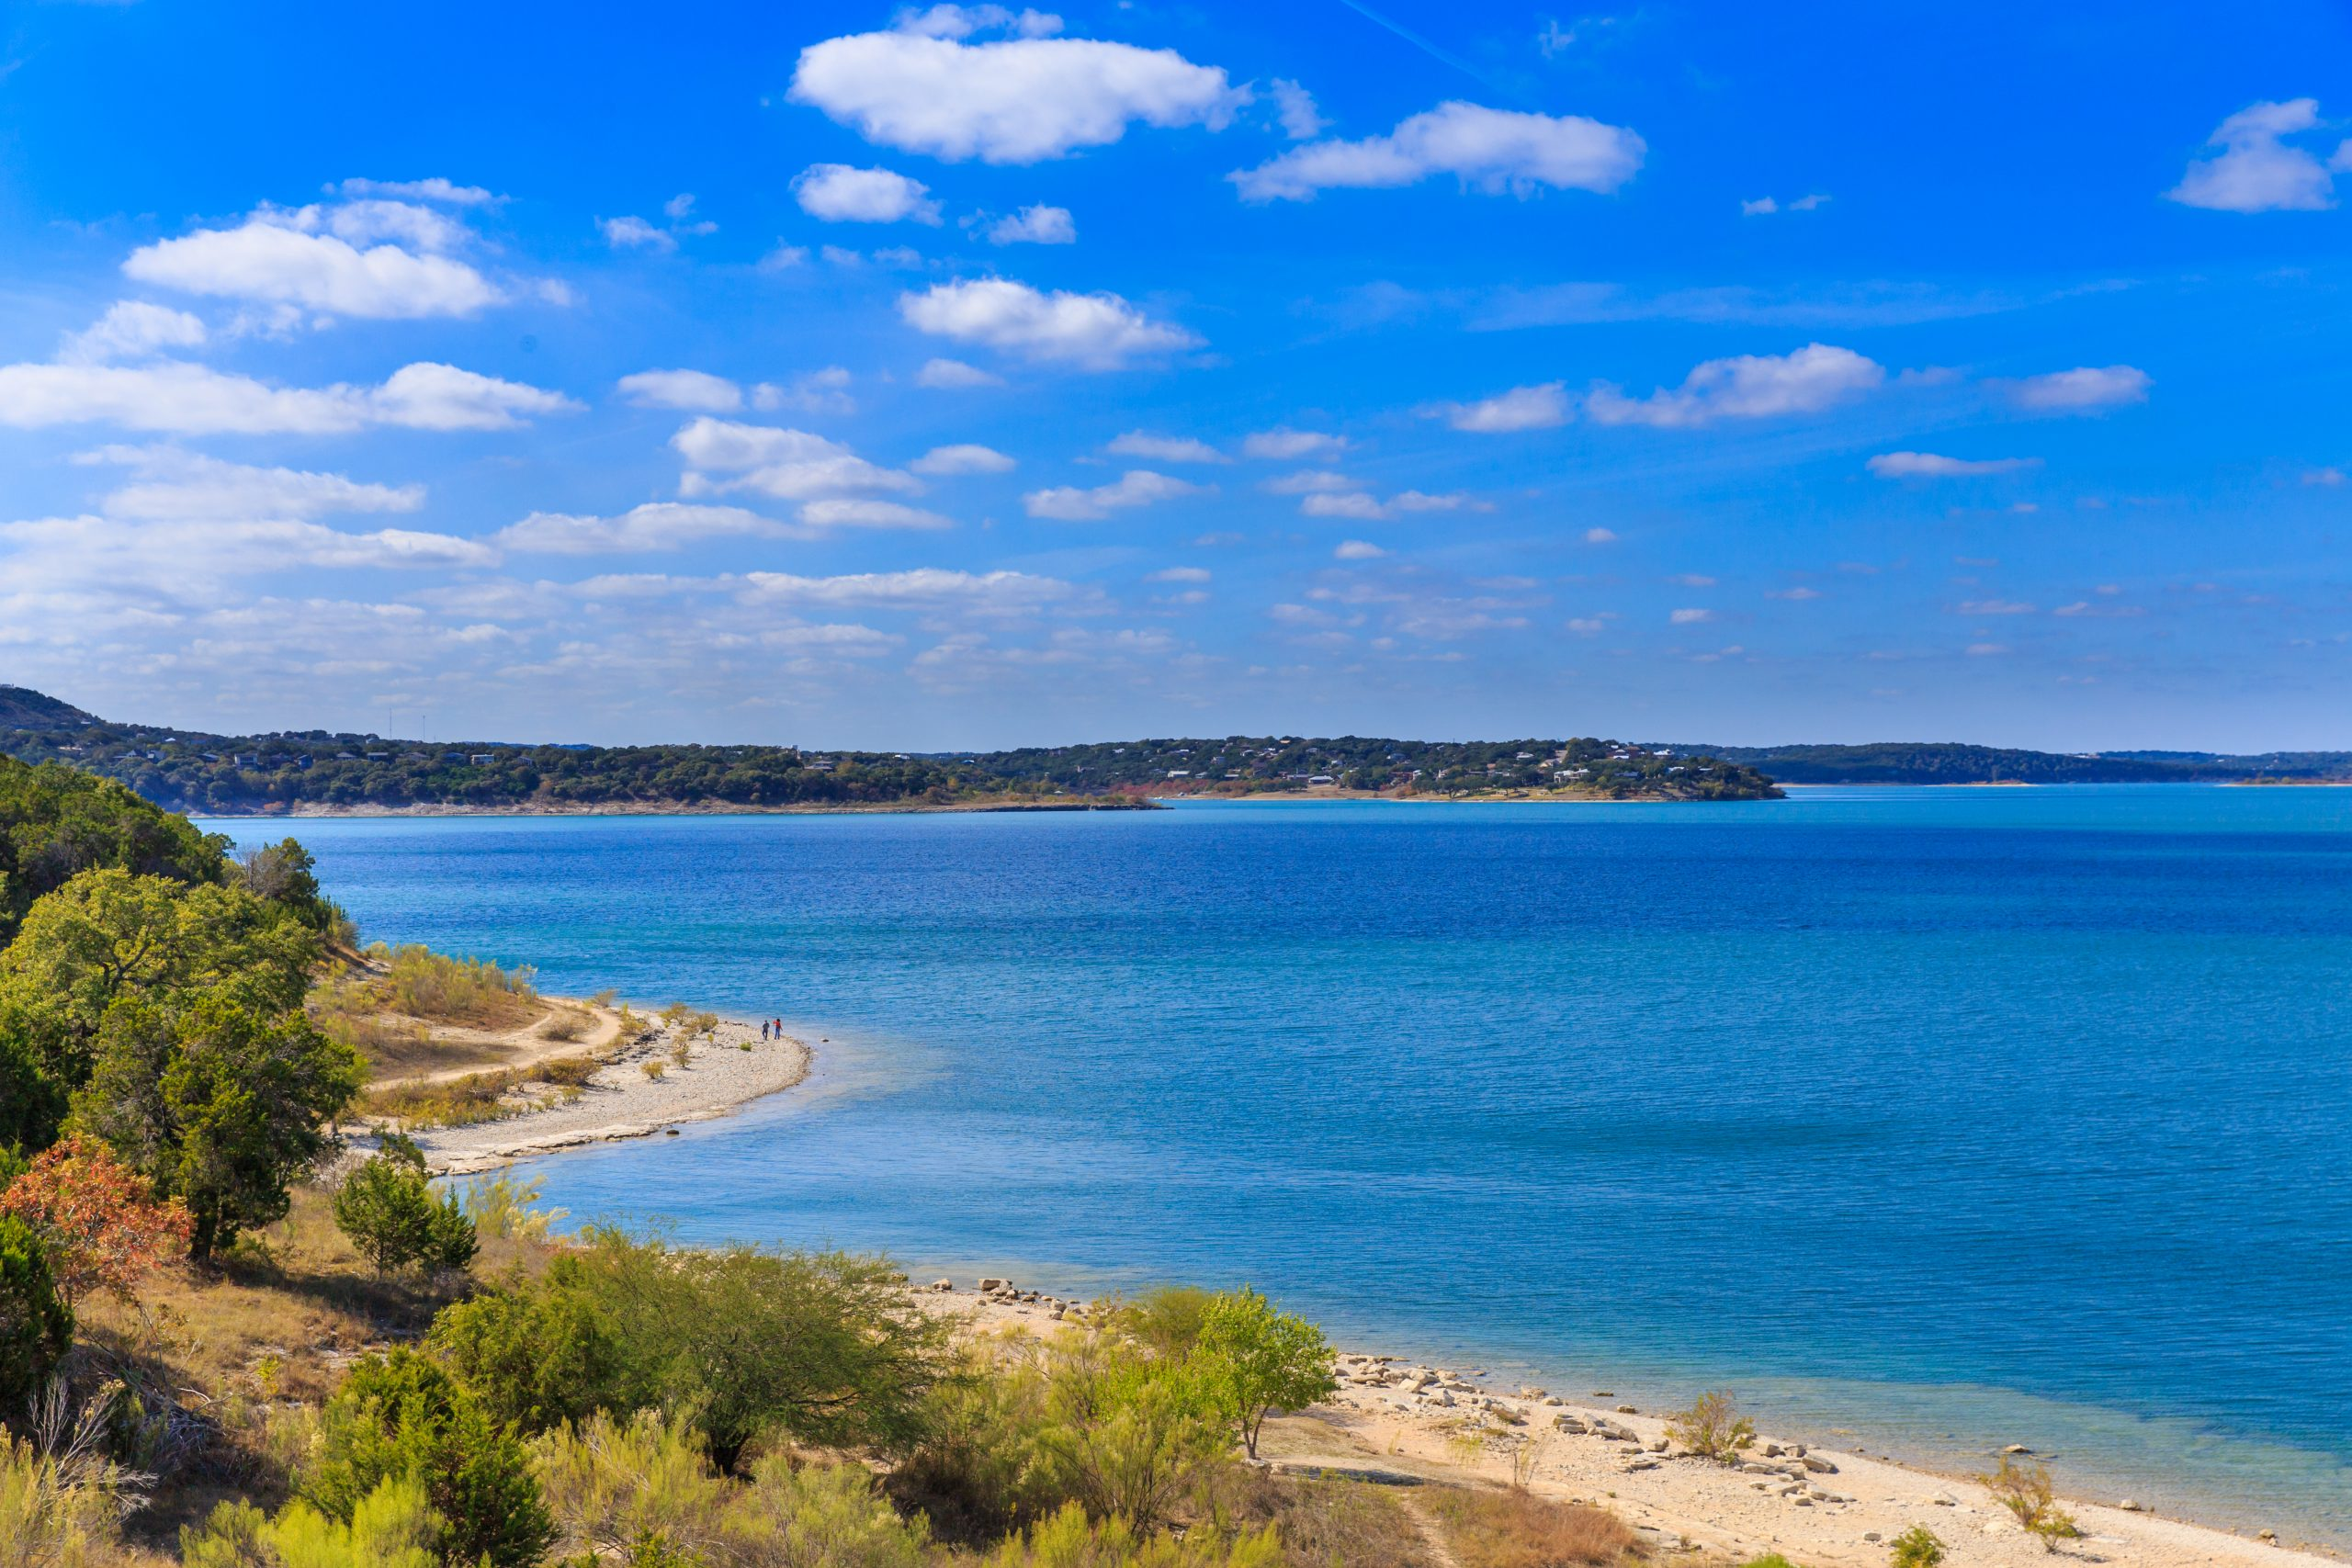 view of canyon lake from above, home to some of the best beaches near san antonio tx